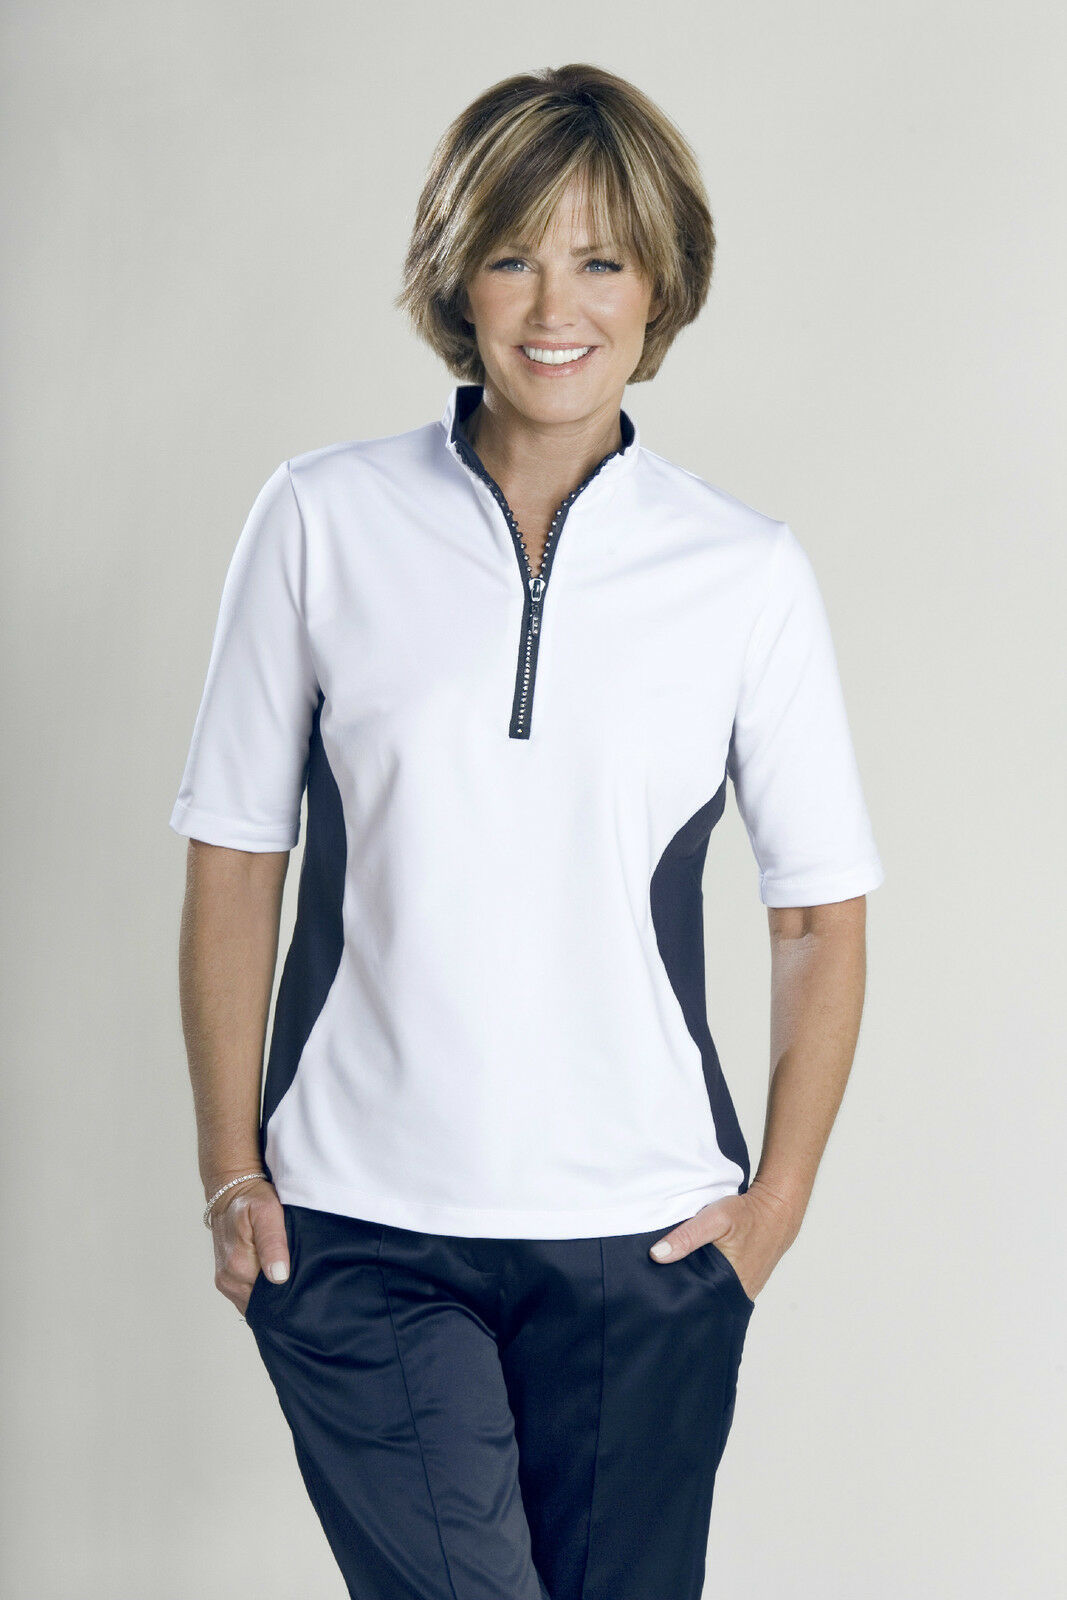 Stylish Women's Golf & Casual White Short Sleeve Mock Polo, Rhinestone Zipper